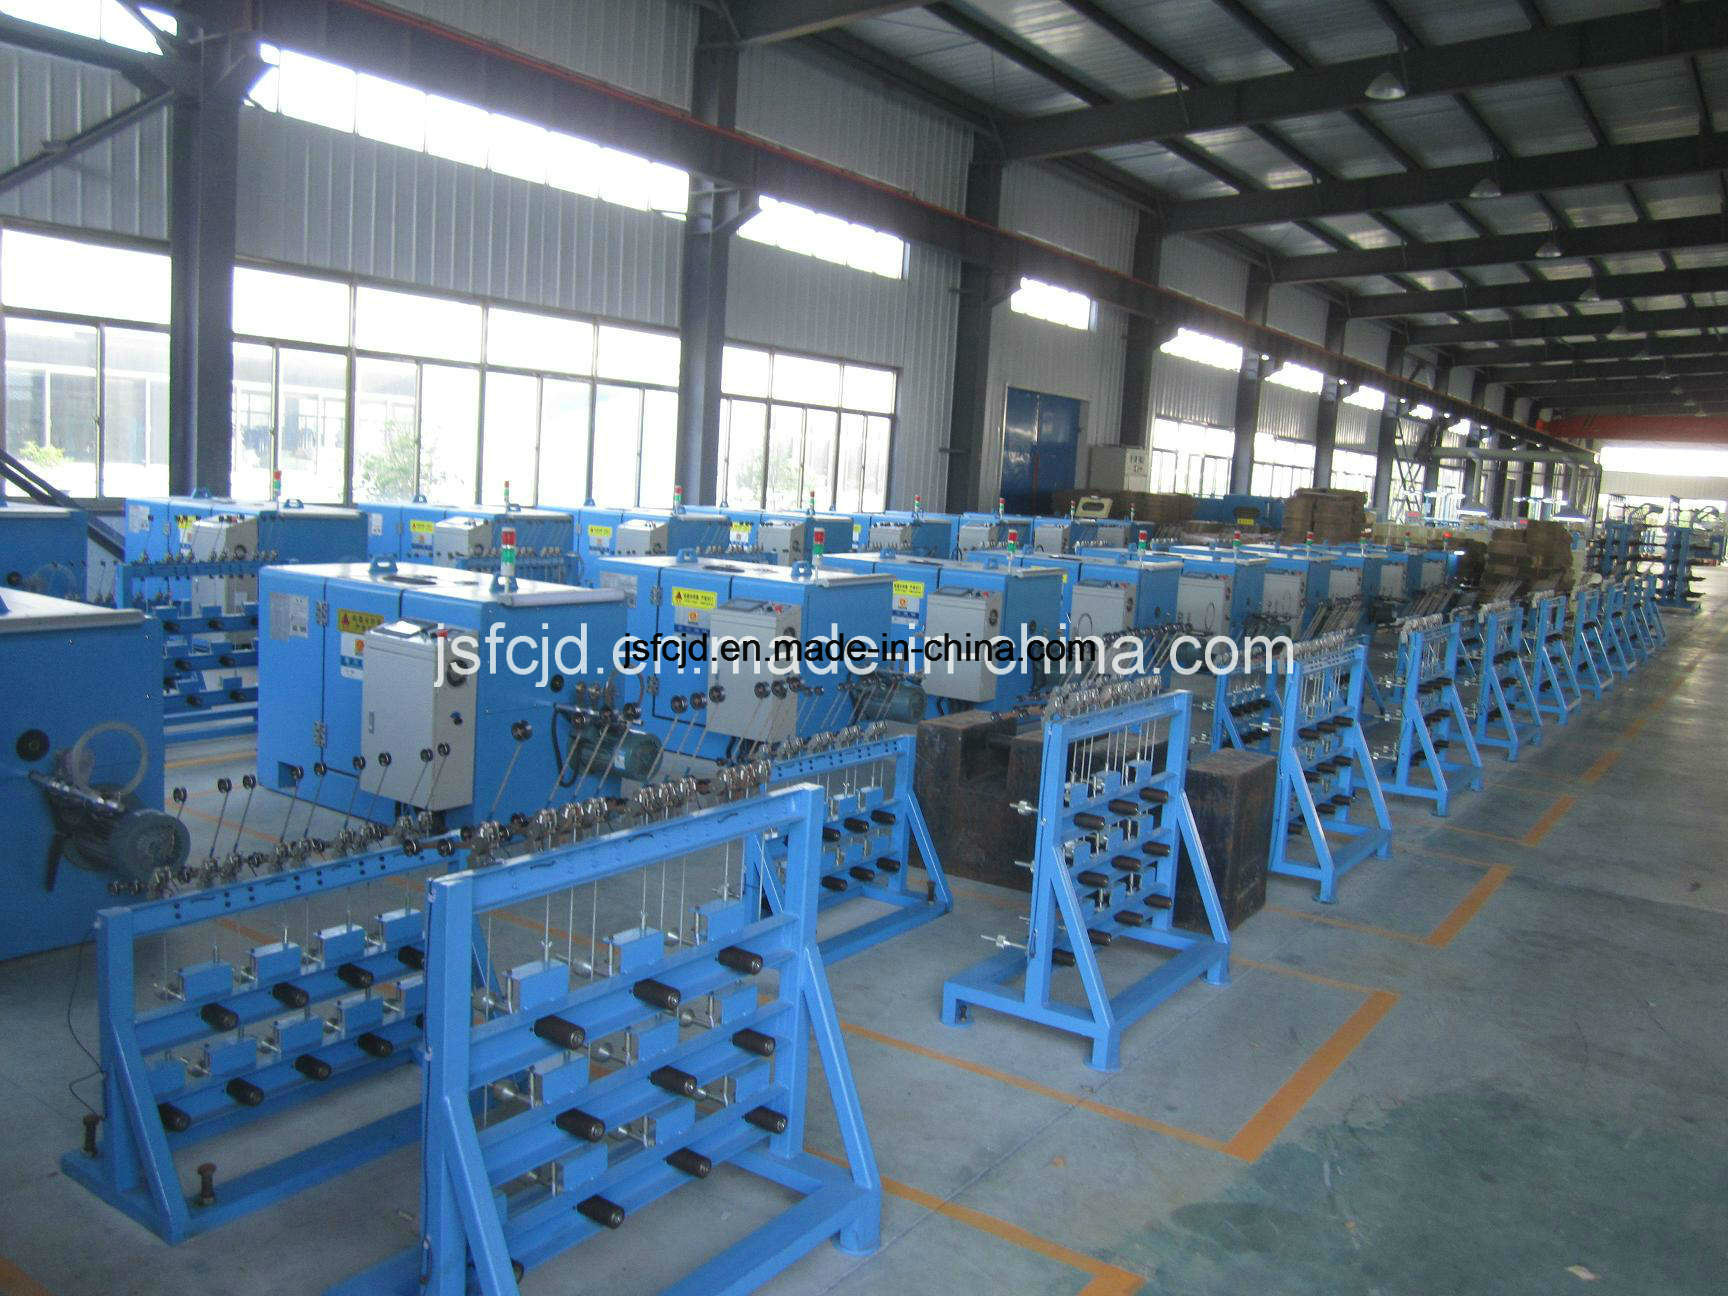 High Speed Copper Wire, Alloy Wire, Tinned Wire, Enamelled Wire Twisting/Stranding Bunching Machine